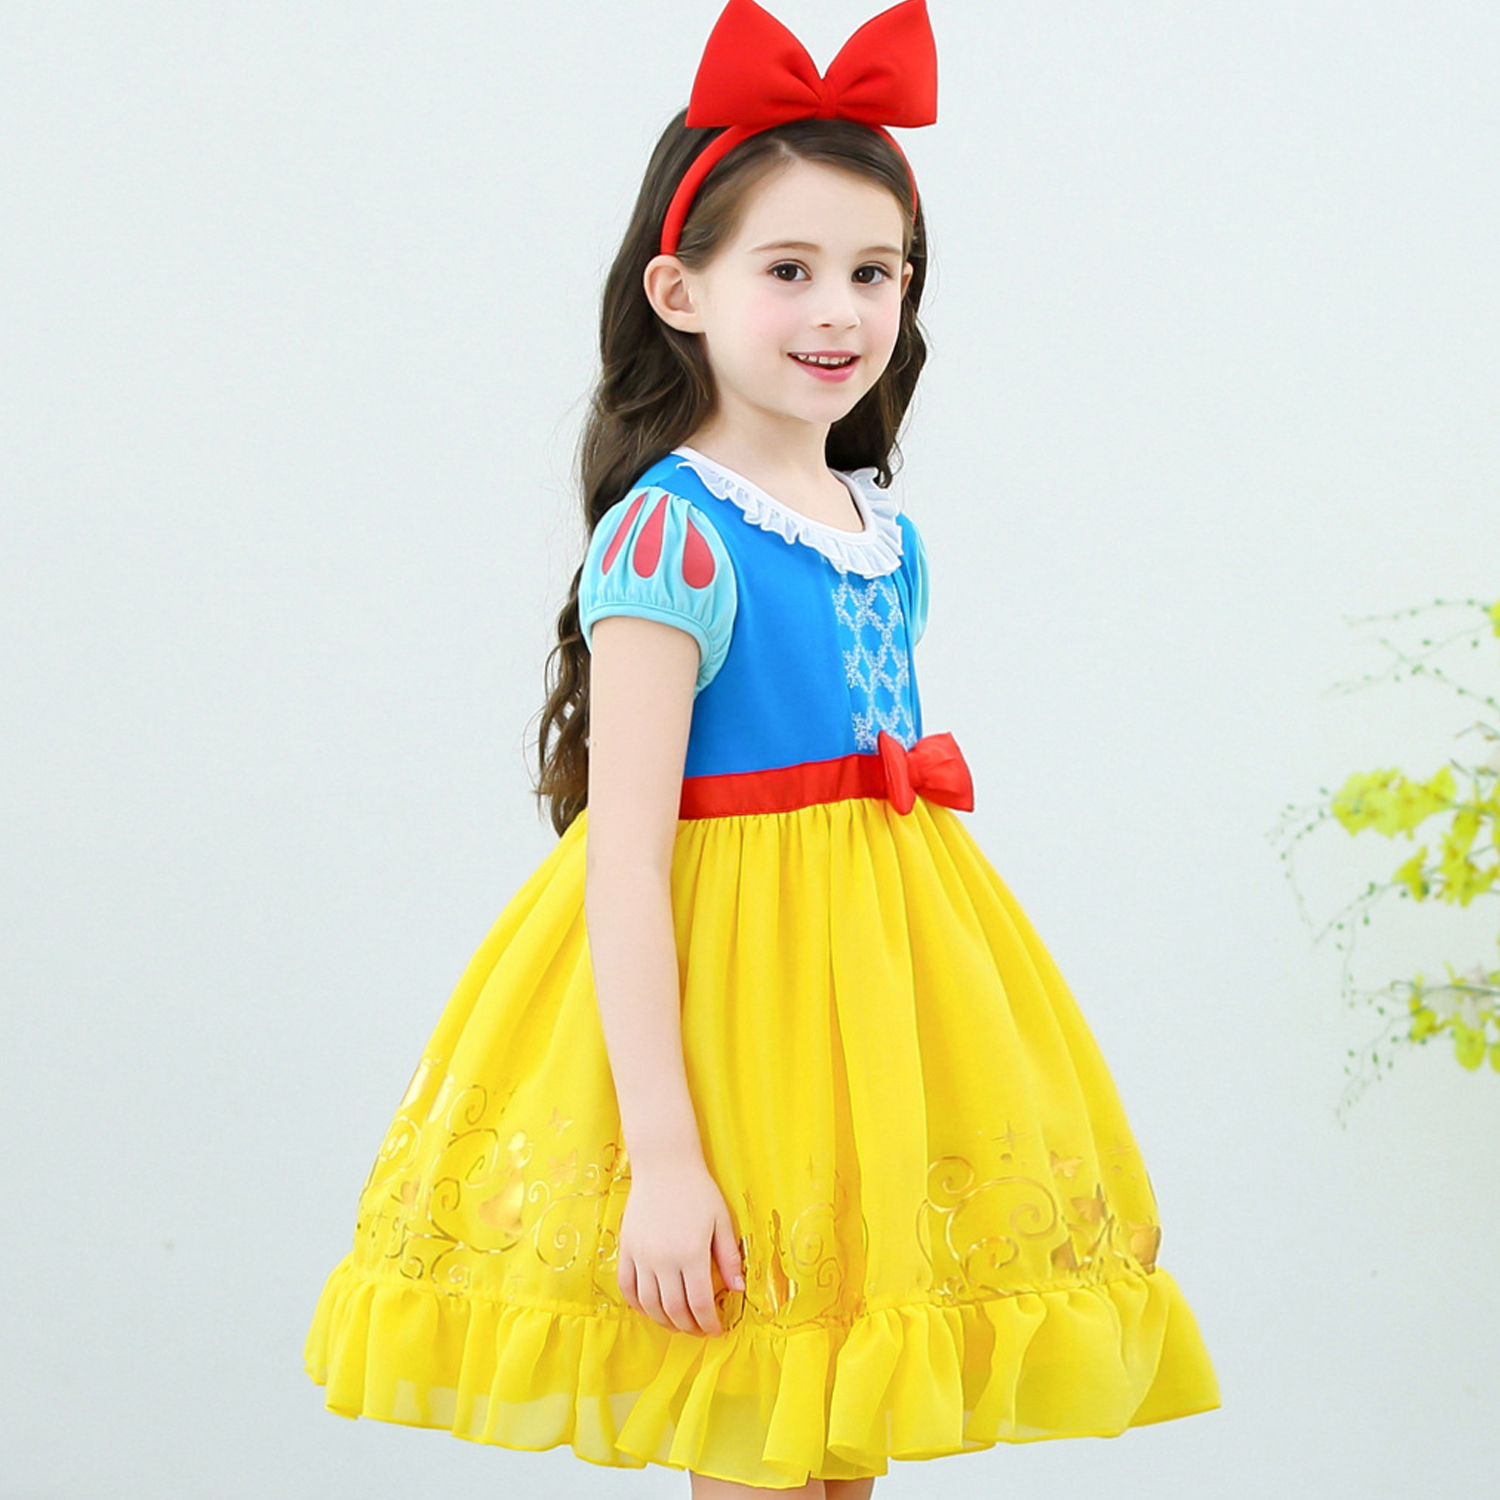 Infant Girls Christmas Snow White Princess Dresses Kids Cosplay Costume Halloween Clothes Toddler Party rapunzelDress for Girl 1